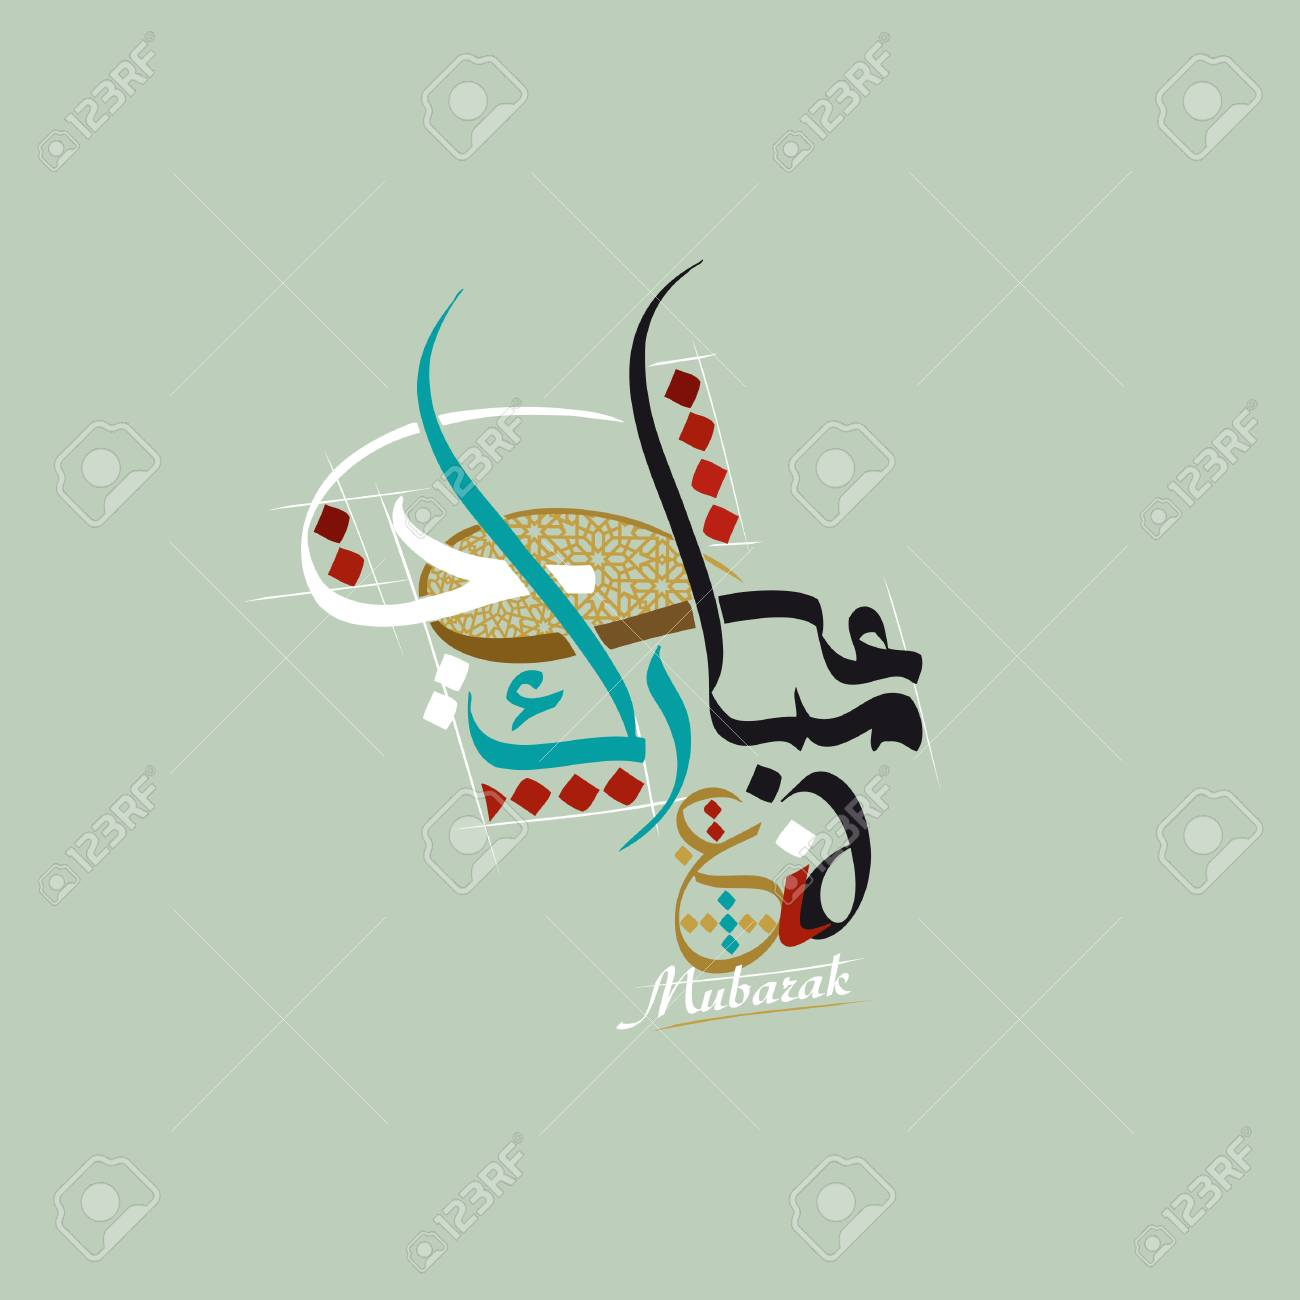 Eid mubarak greeting card islamic background for muslims 65676330 eid mubarak greeting card islamic background for muslims holidays such as eid al fitr eid al adha ag m4hsunfo